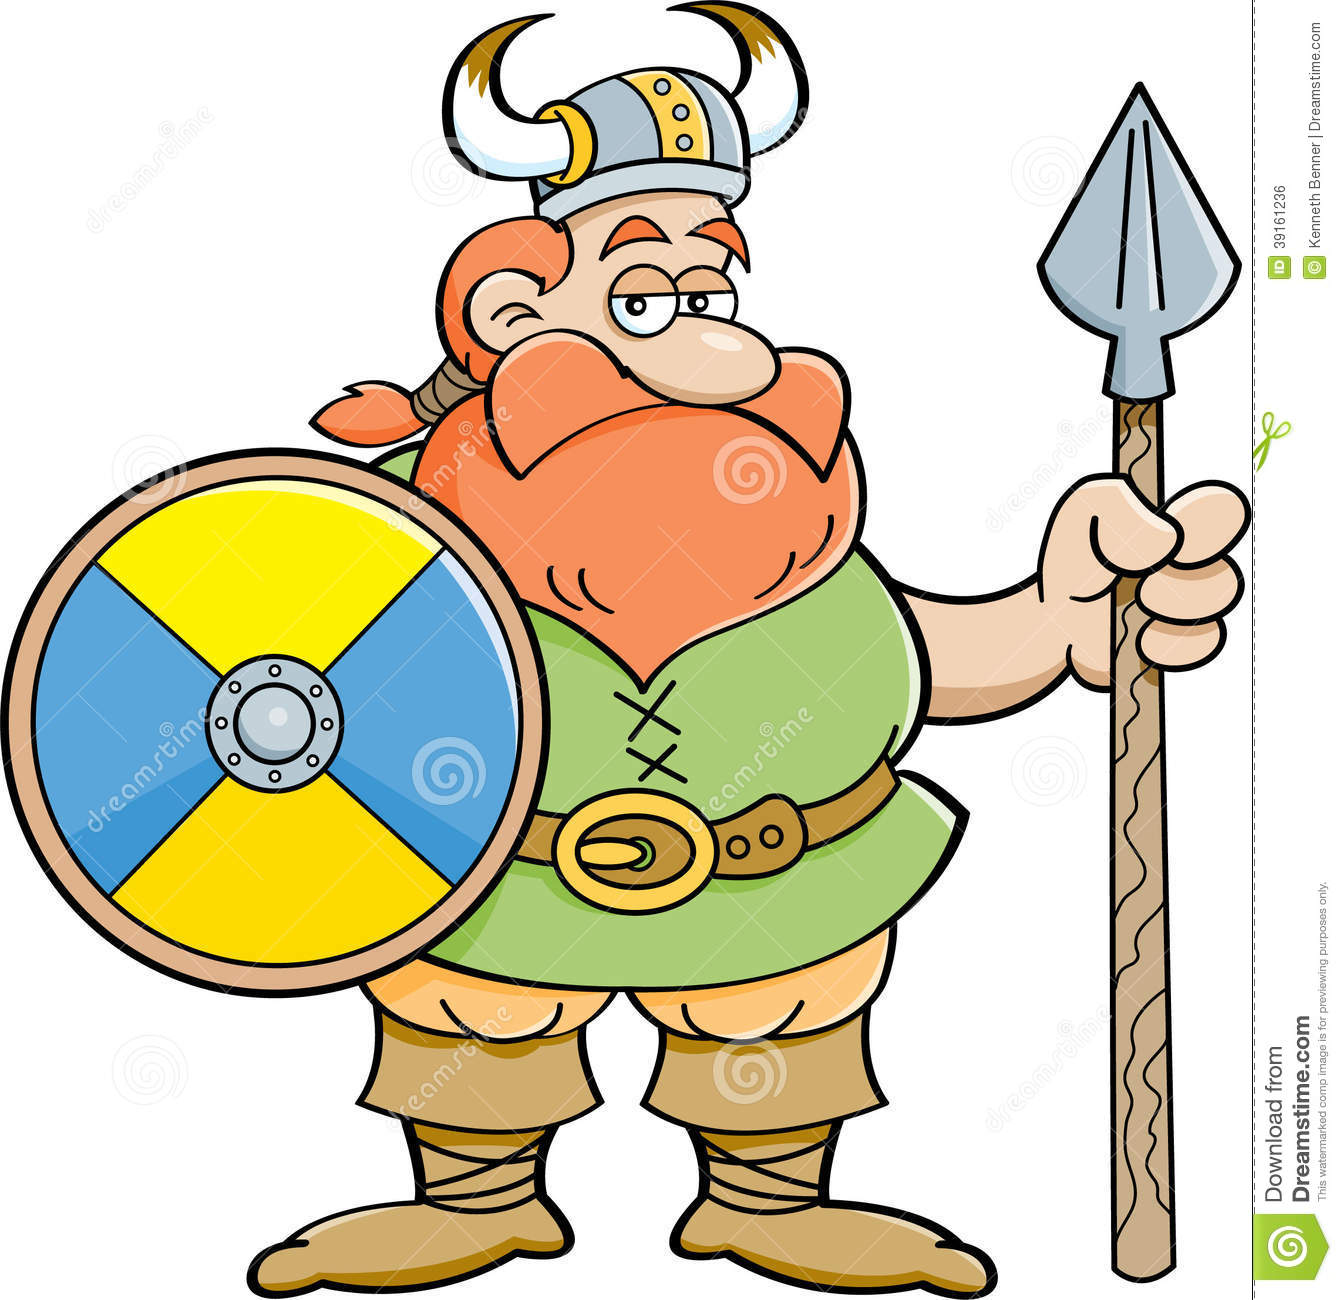 Cartoon Viking Holding A Shield And A Spear. Stock Vector.